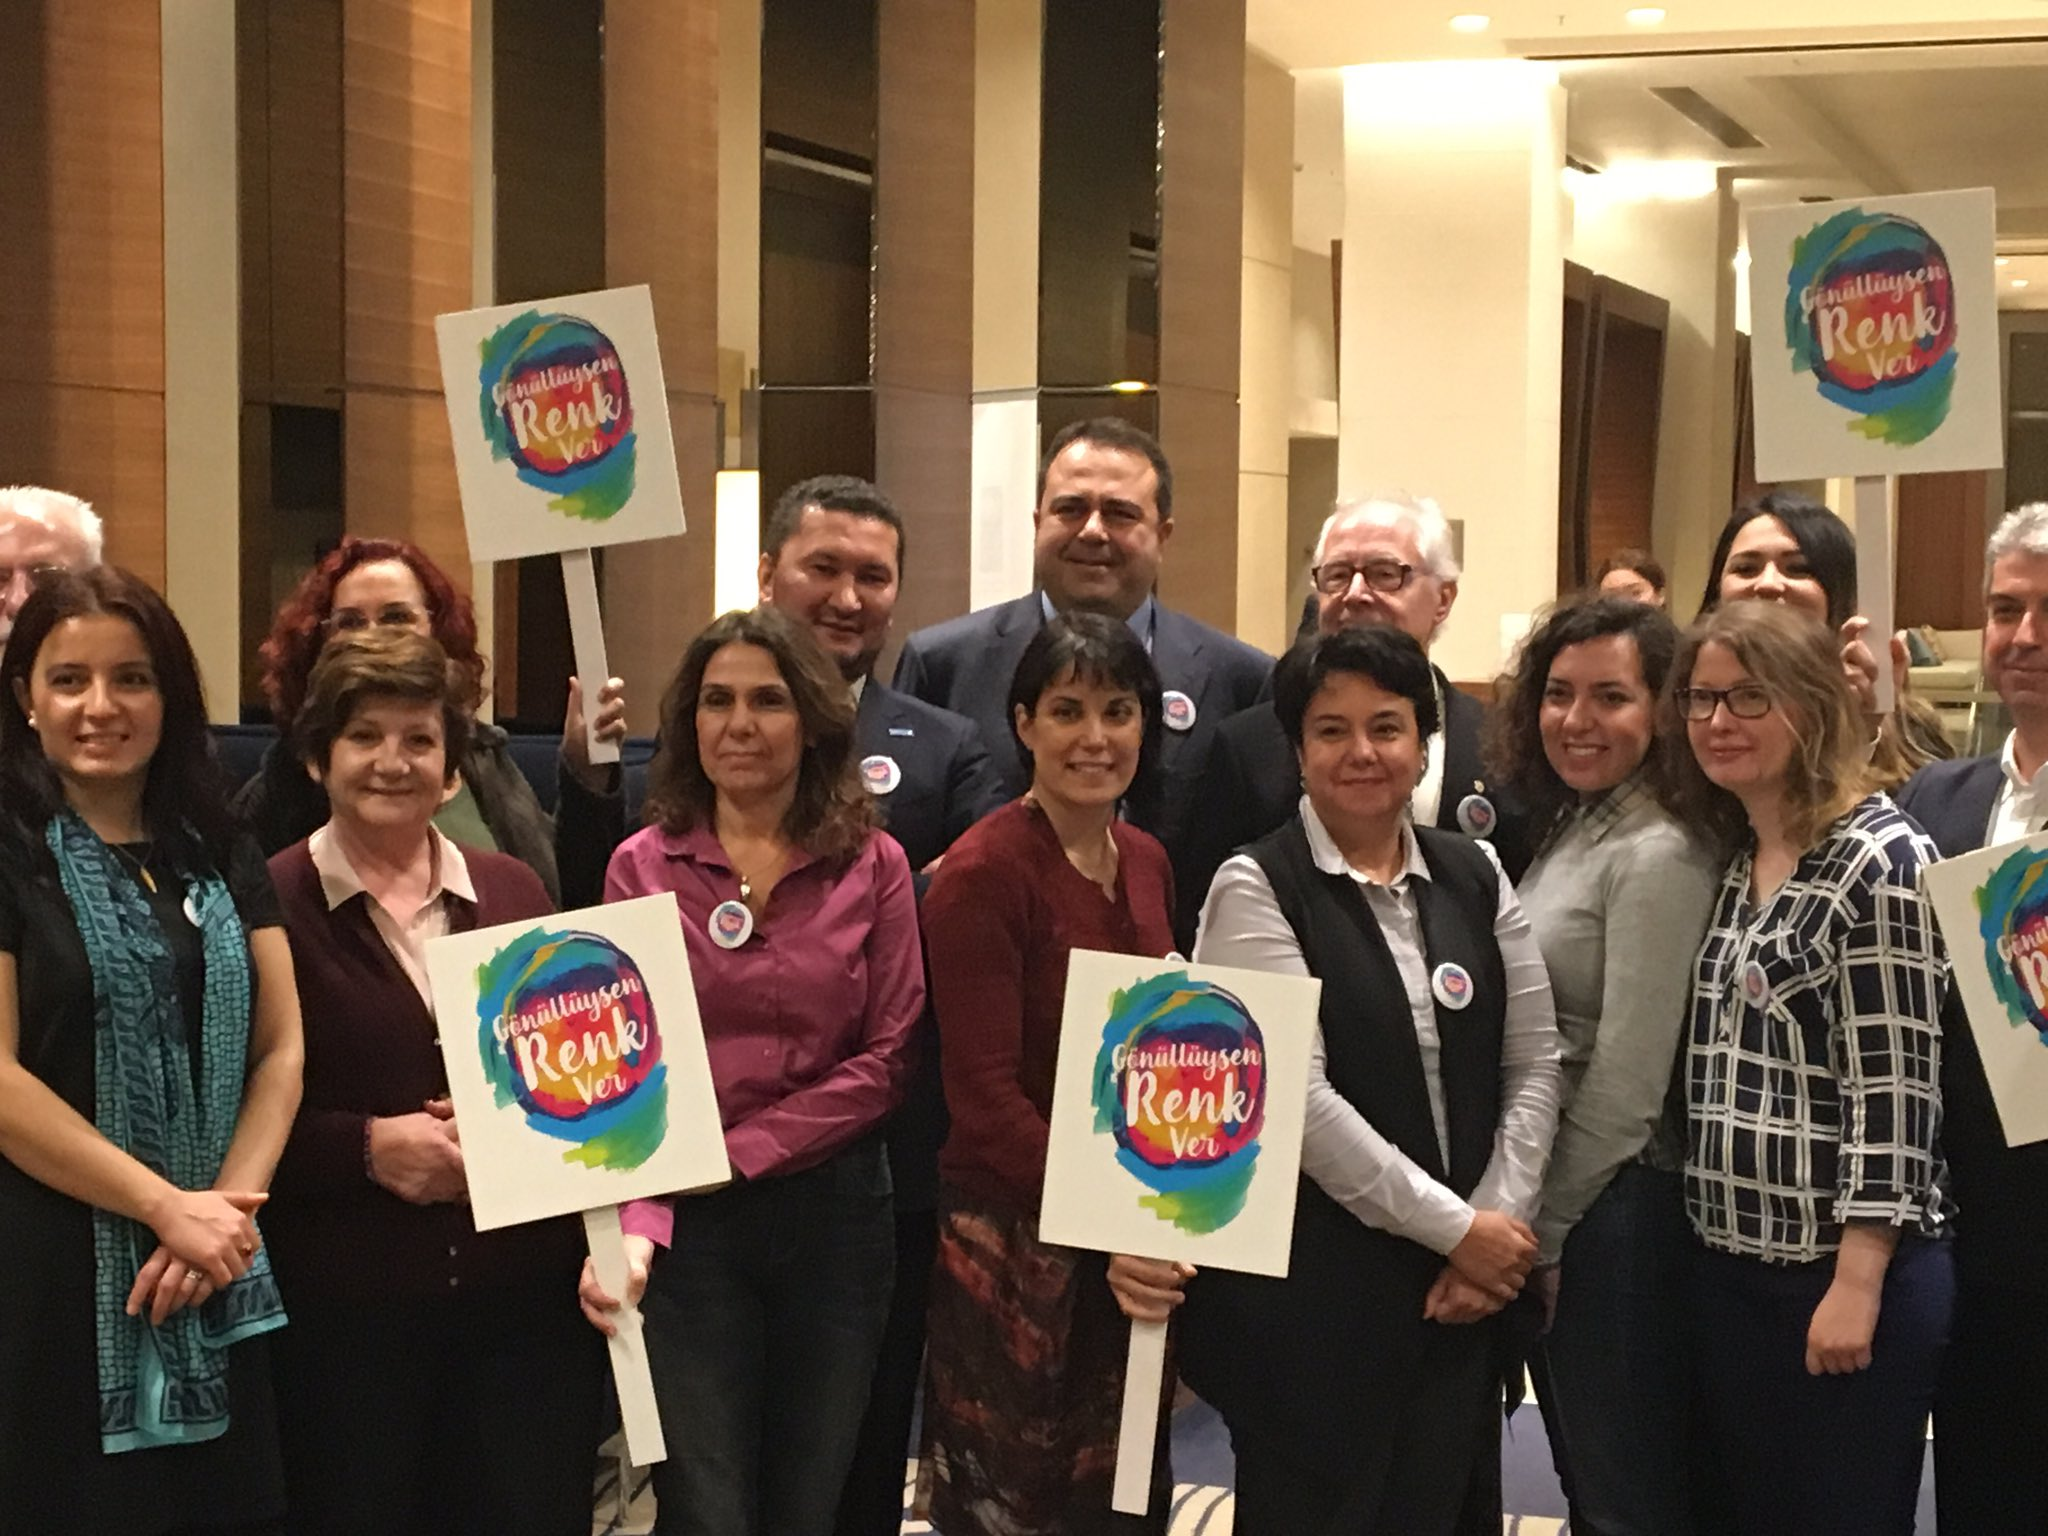 UNV Deputy Executive Coordinator Toily Kurbanov (back, third from left) celebrates volunteers and volunteerism with members of the National Volunteering Committee in Istanbul, Turkey.